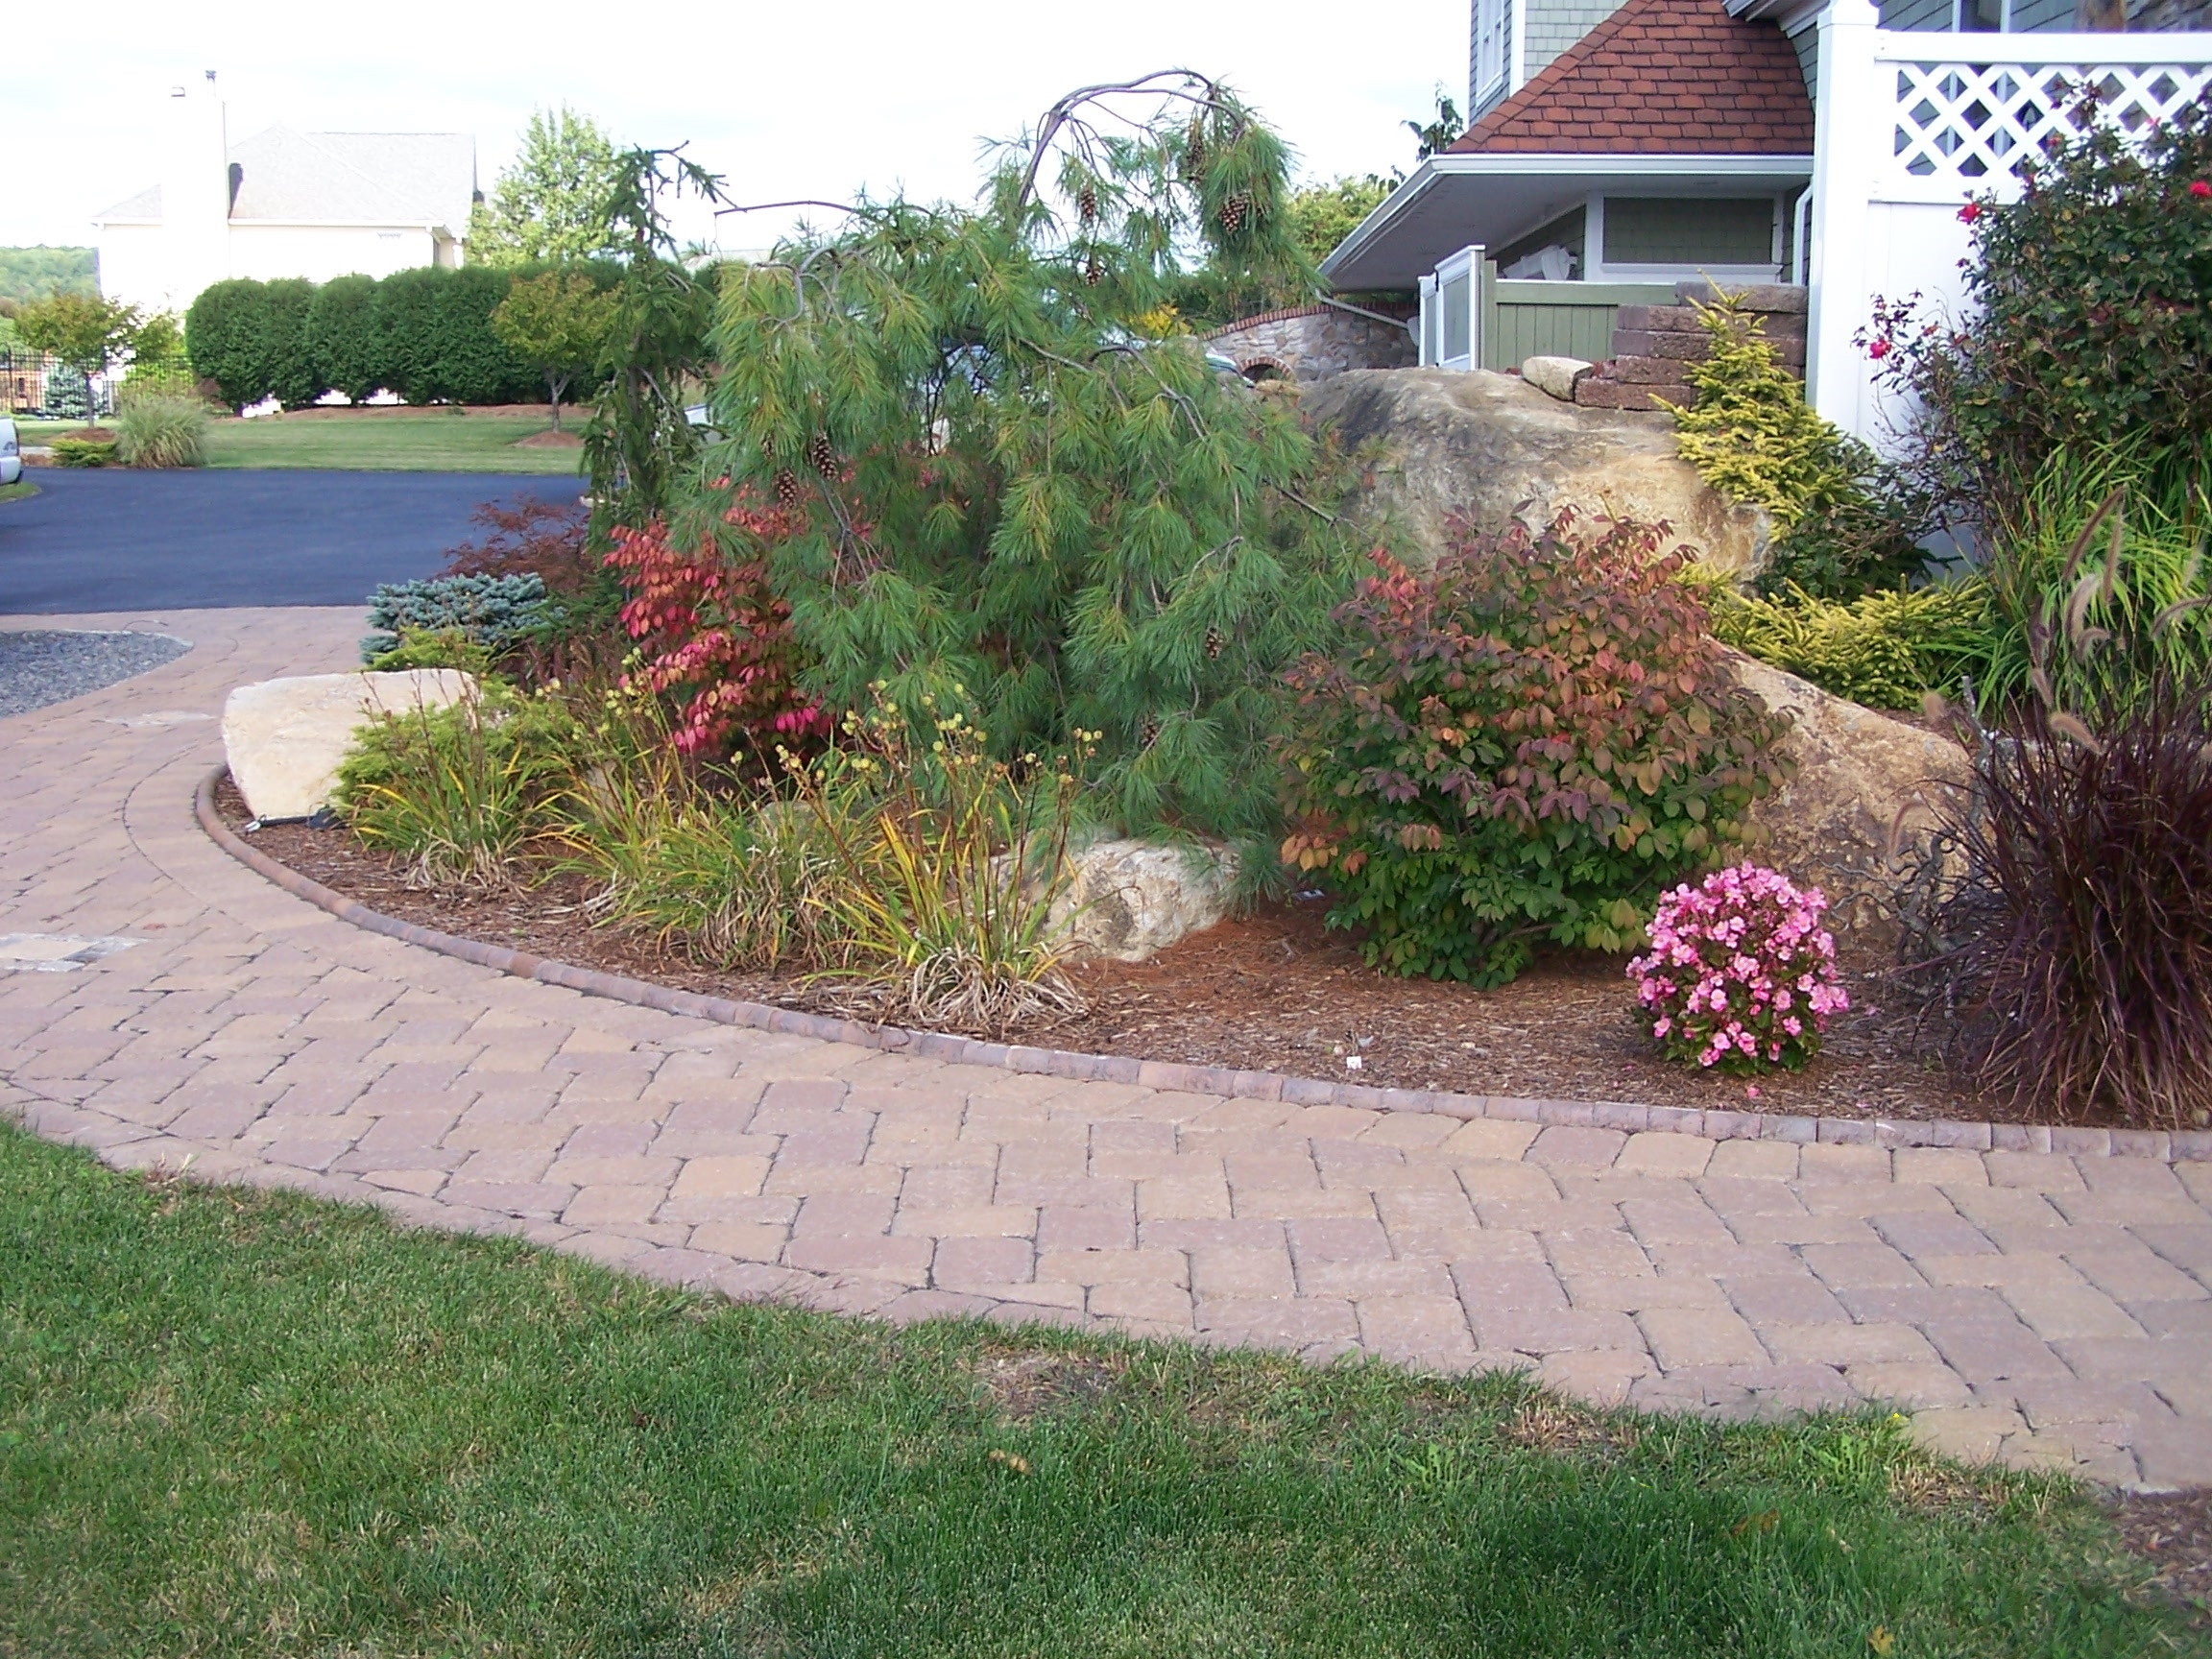 Landscaped Paver Walk